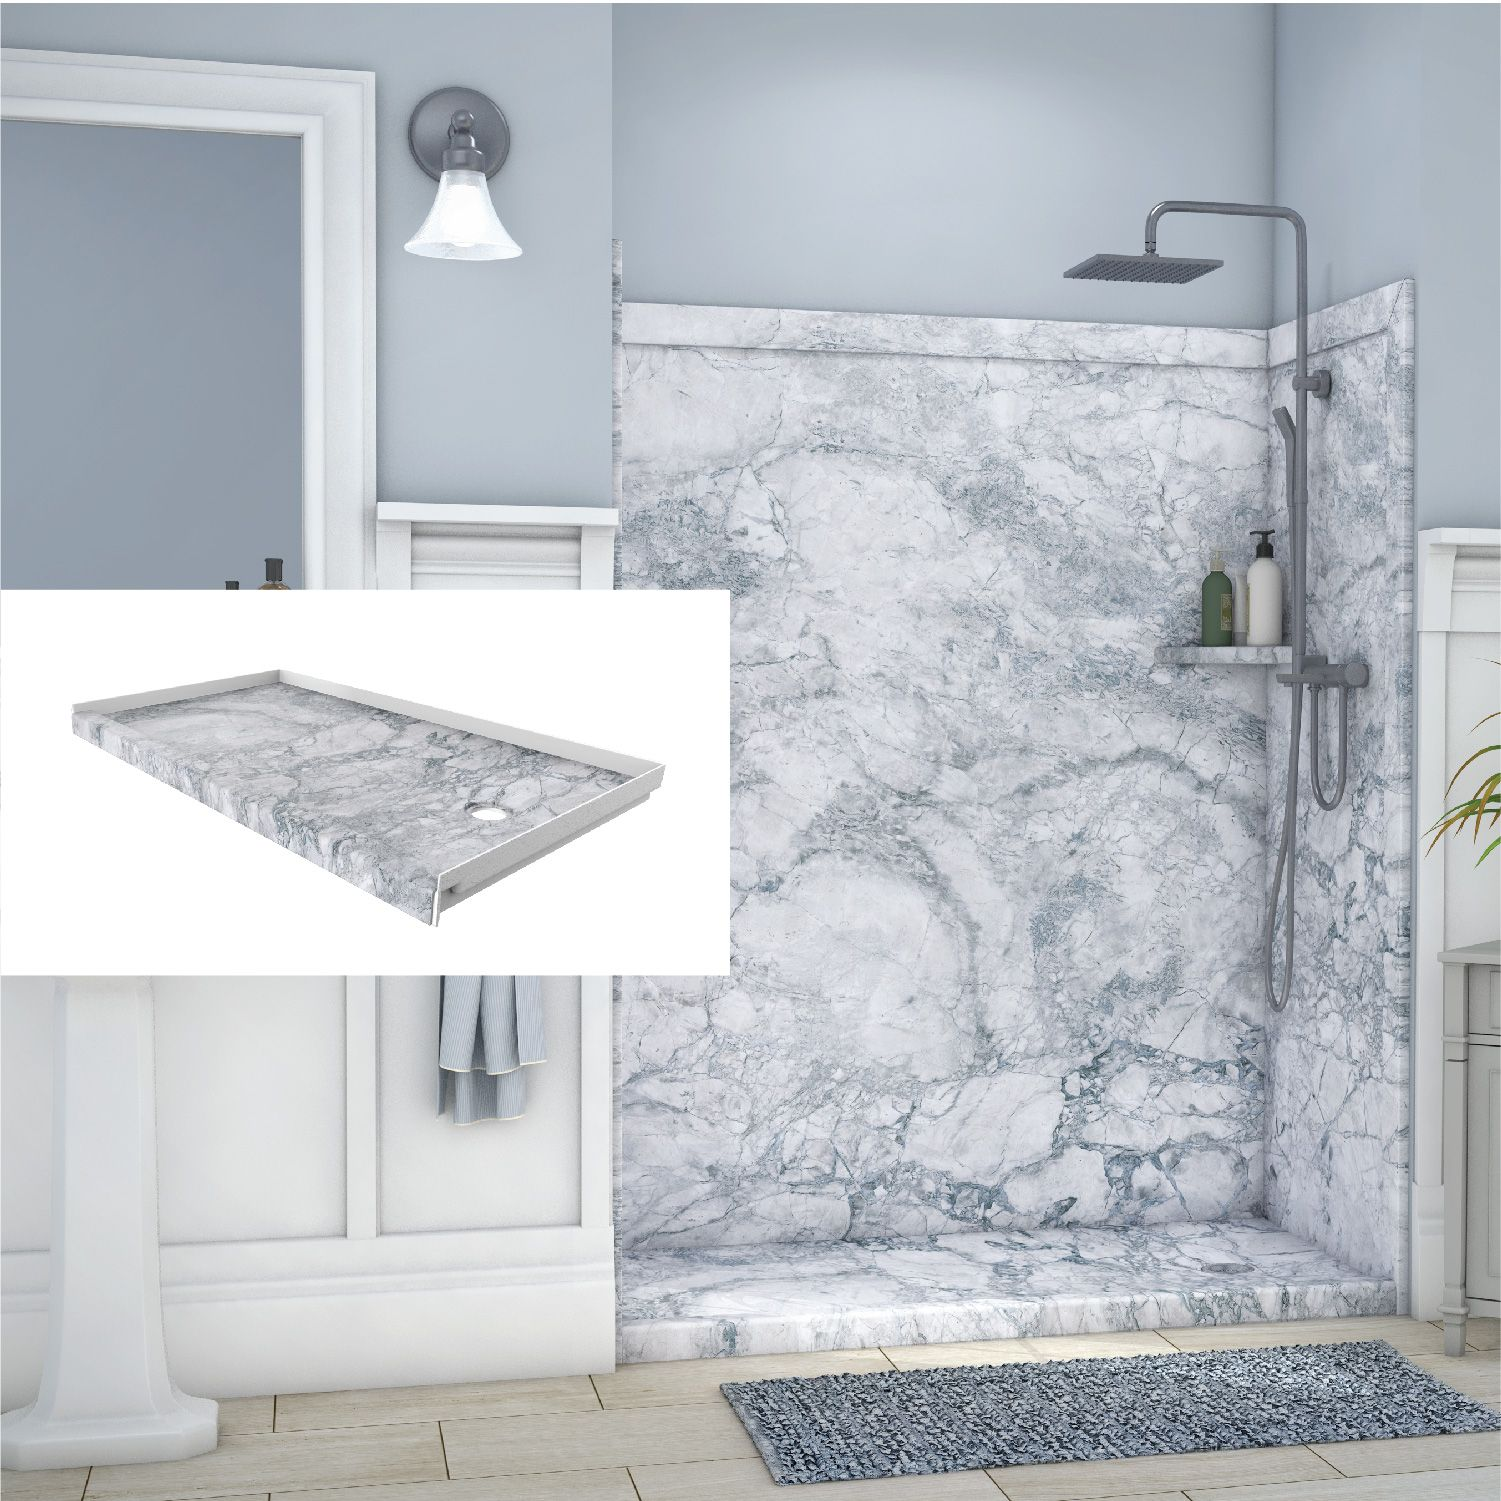 Did You Know You Can Order A Shower Base To Perfectly Match Your